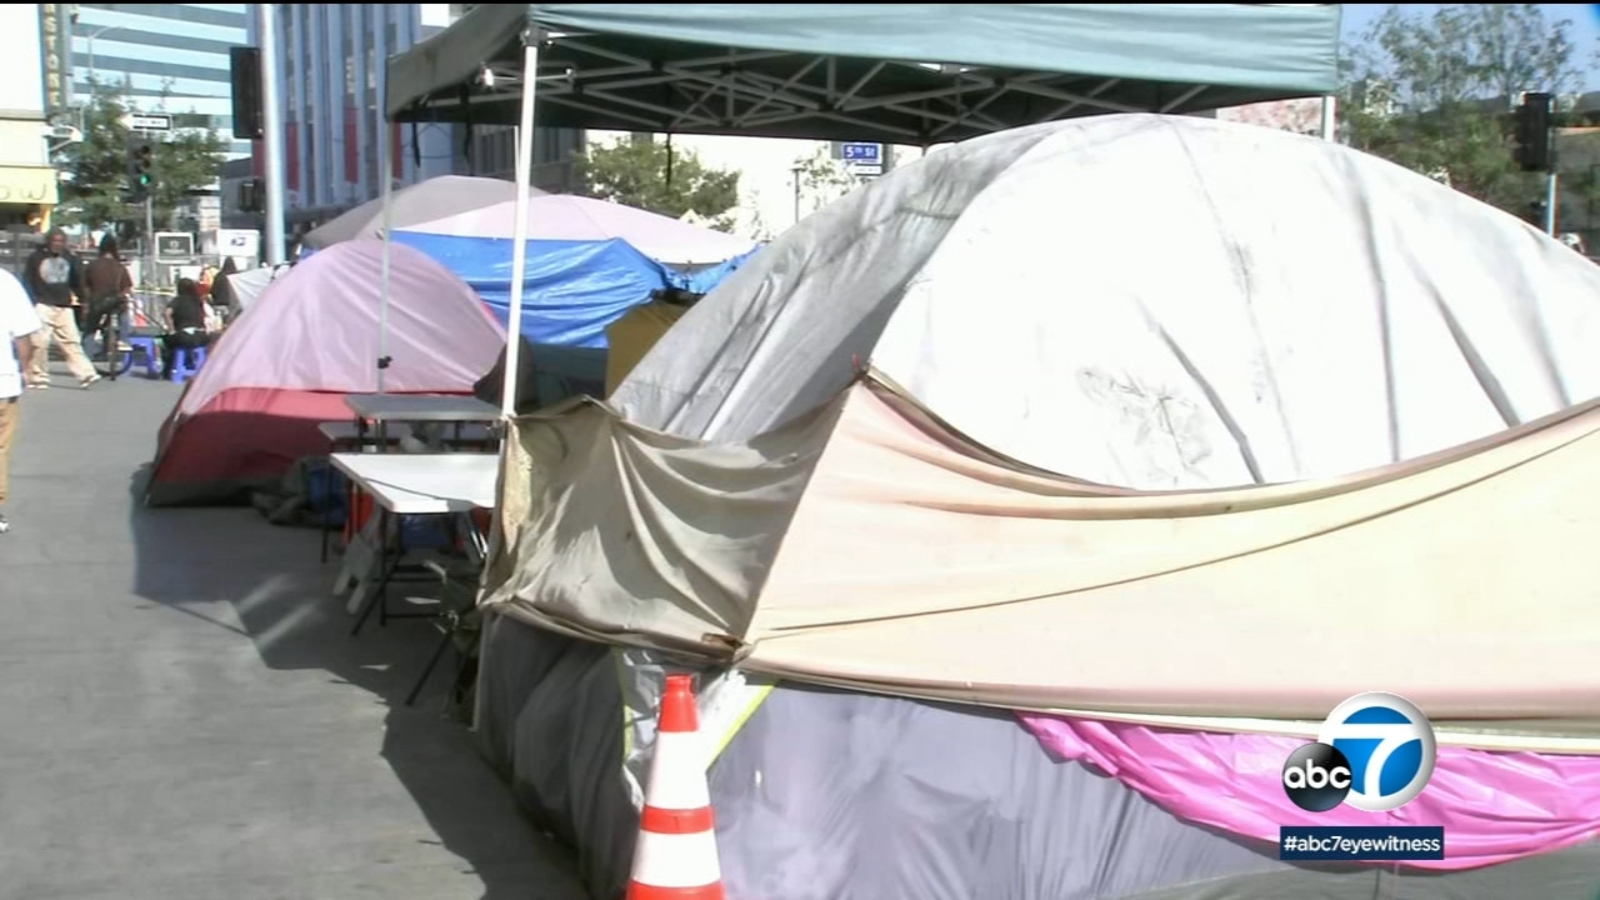 As homeless crisis grows, new law offers forced treatment for mental health, addiction